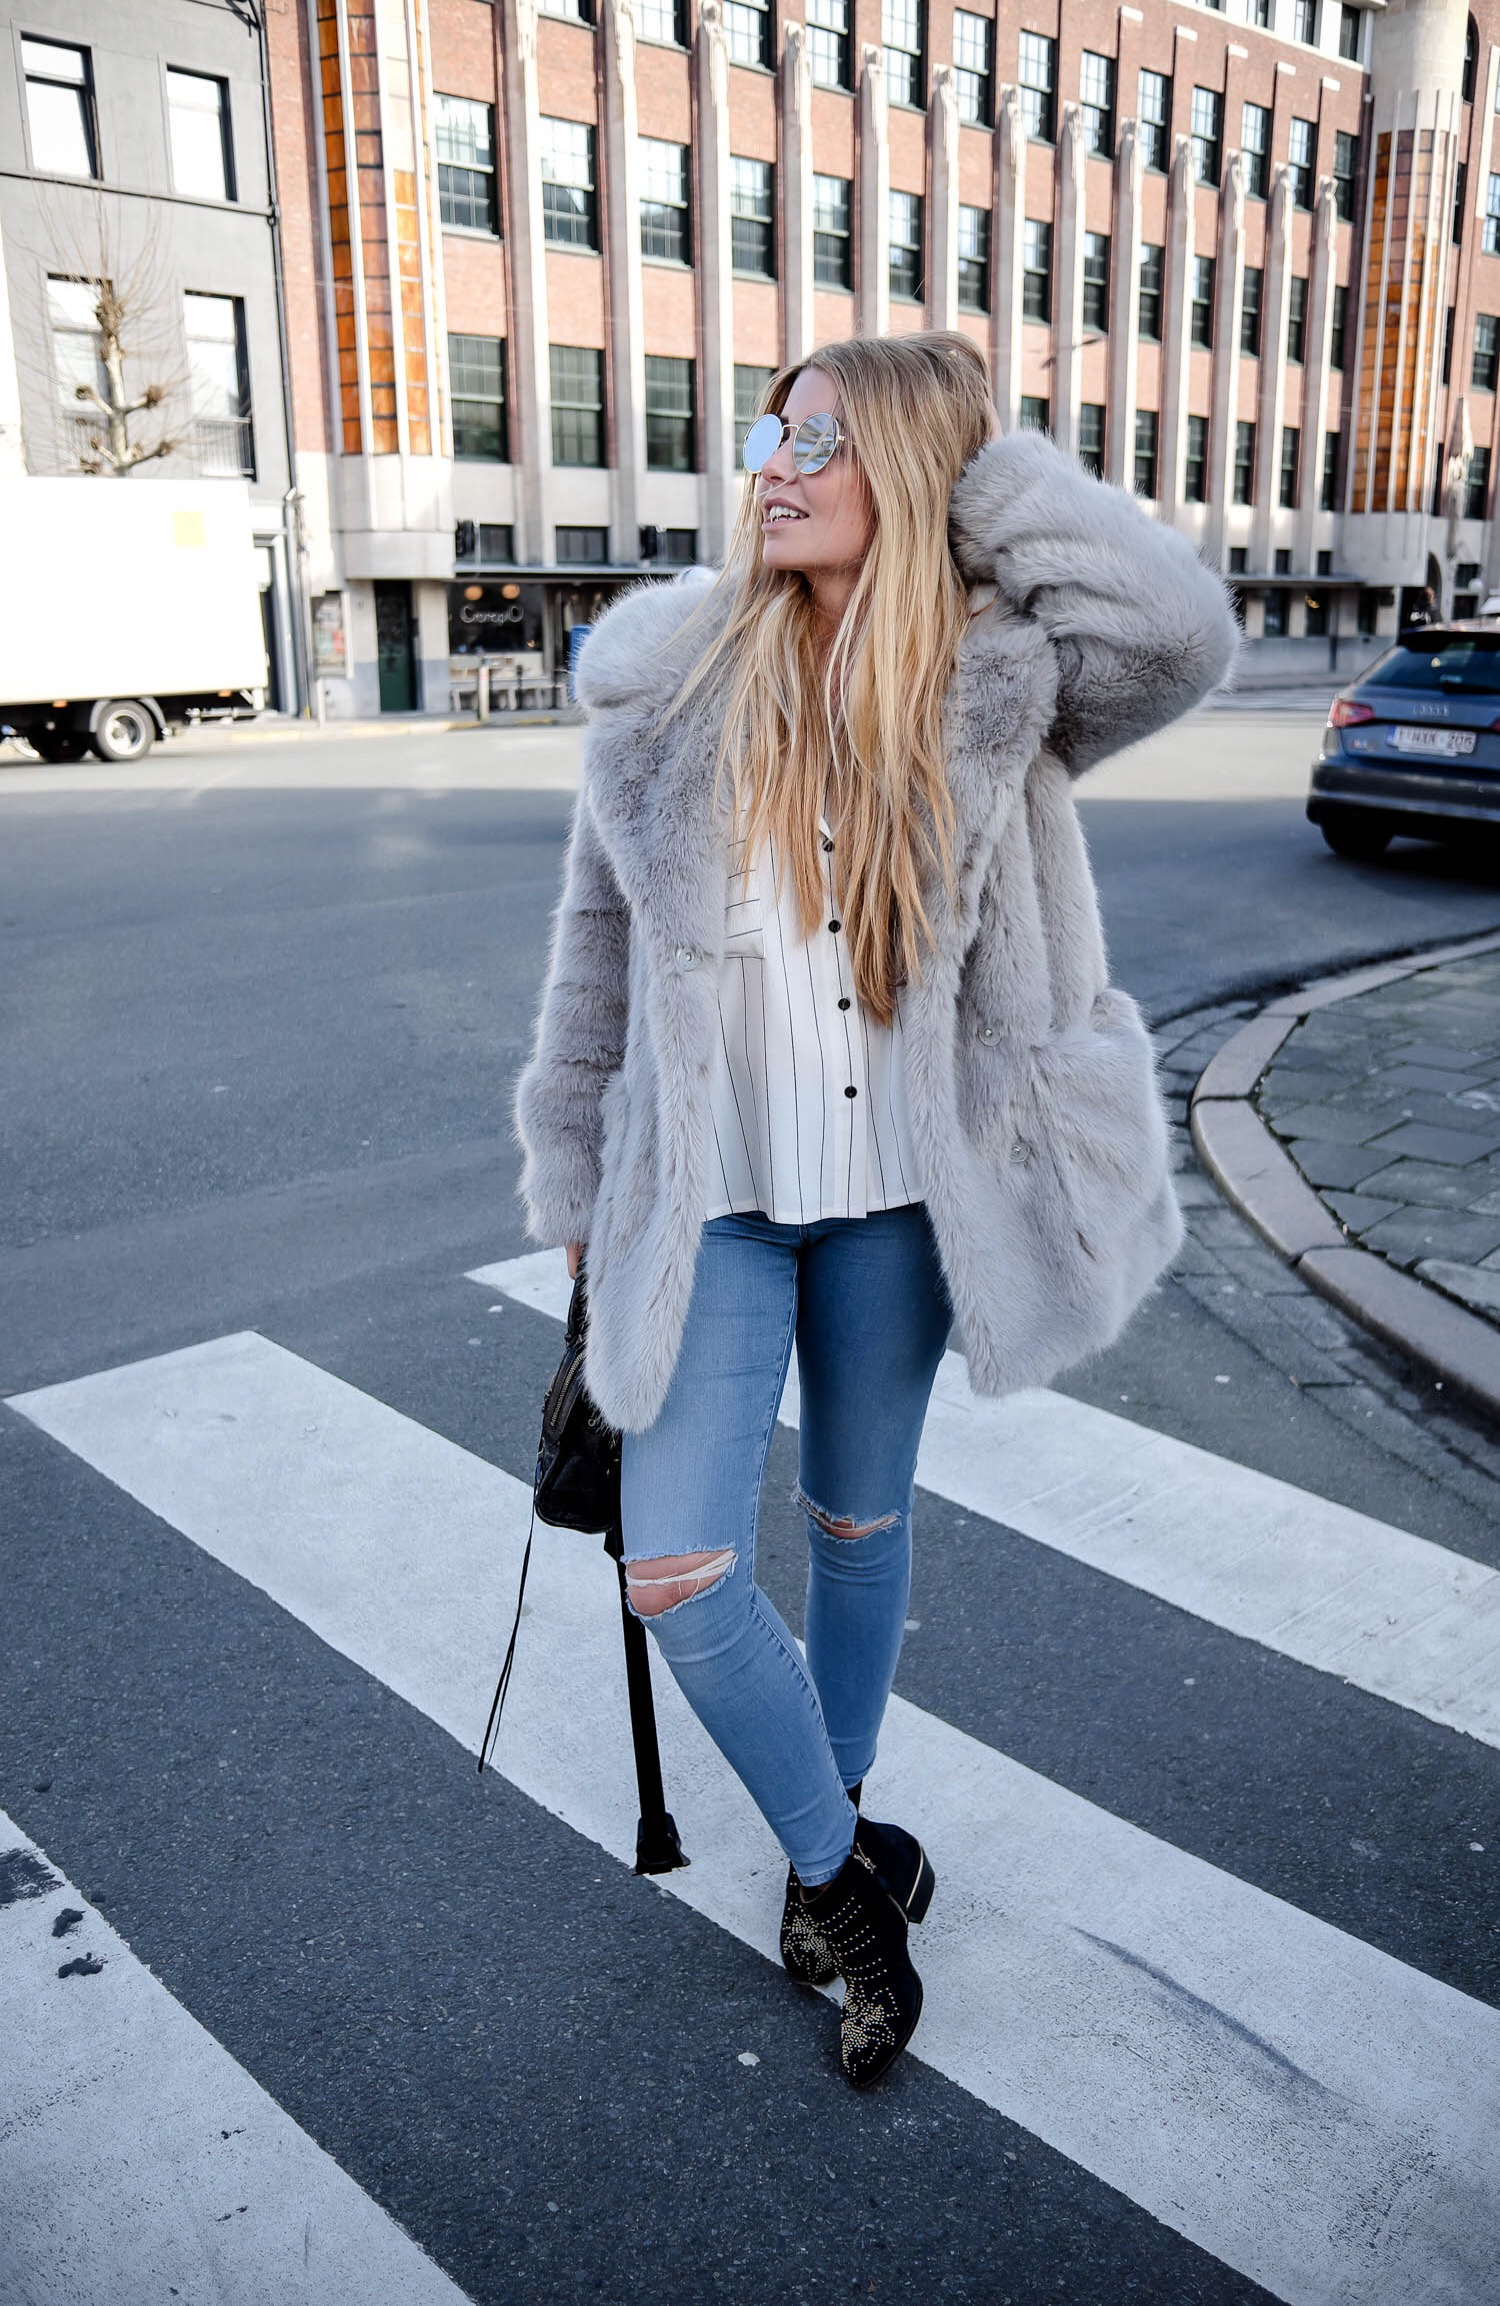 Elien Migalski from Dogs and Dresses personal style blog wears faux fur grey coat from Topshop and Chloe Susanna boots